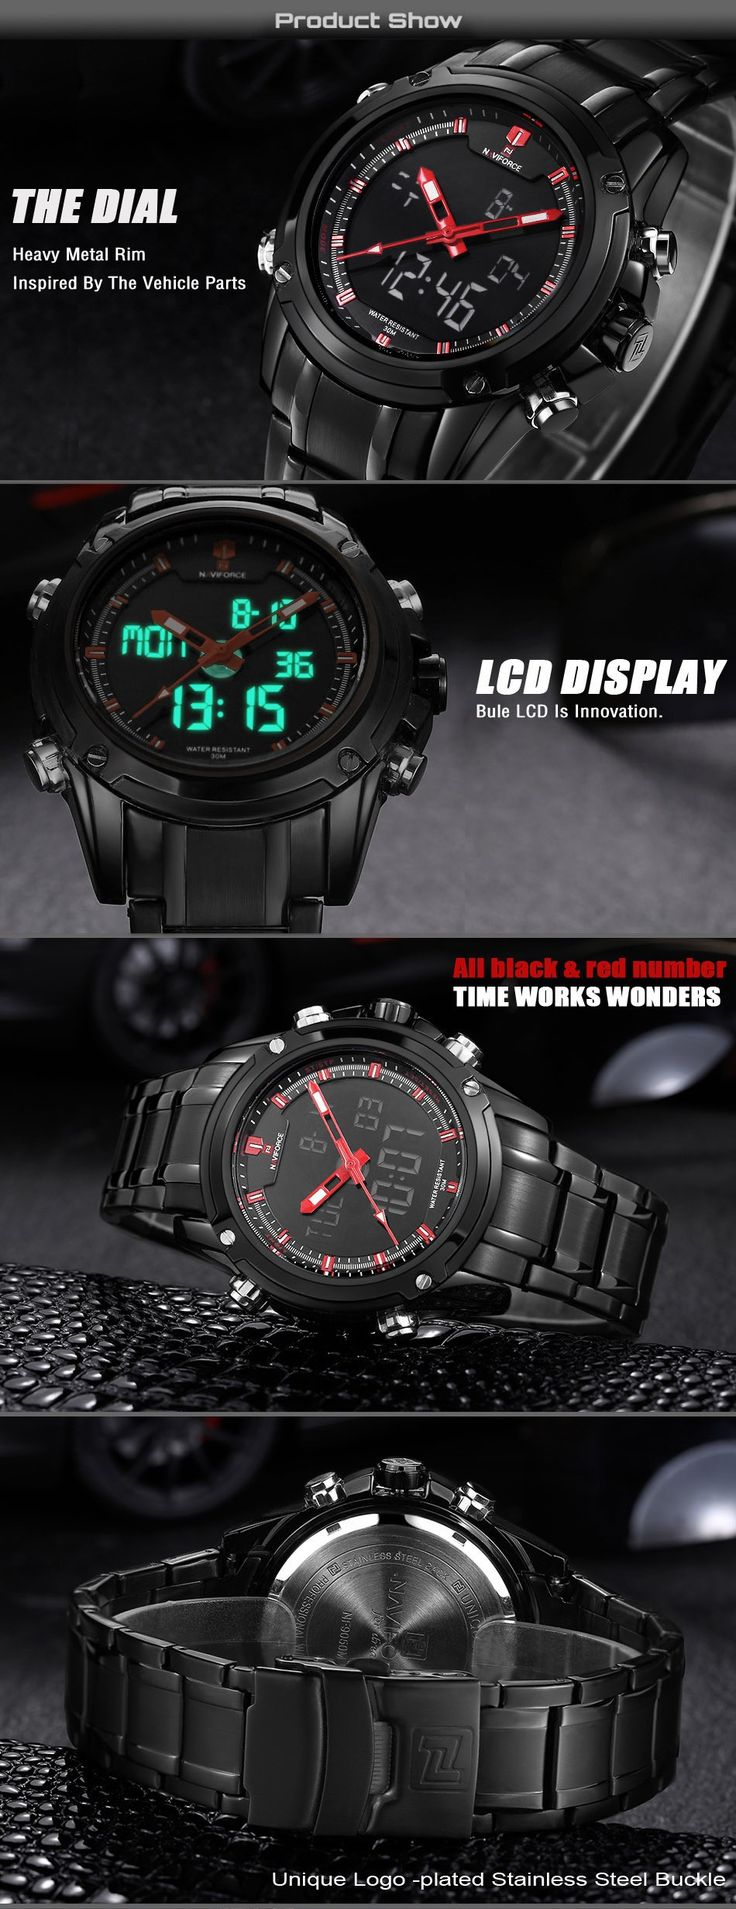 Top Men Watches Luxury Brand Men's Quartz Hour Analog Digital LED Sports Watch Men Army Military Wrist Watch Relogio Masculino-in Quartz Watches from Watches on Aliexpress.com | Alibaba Group